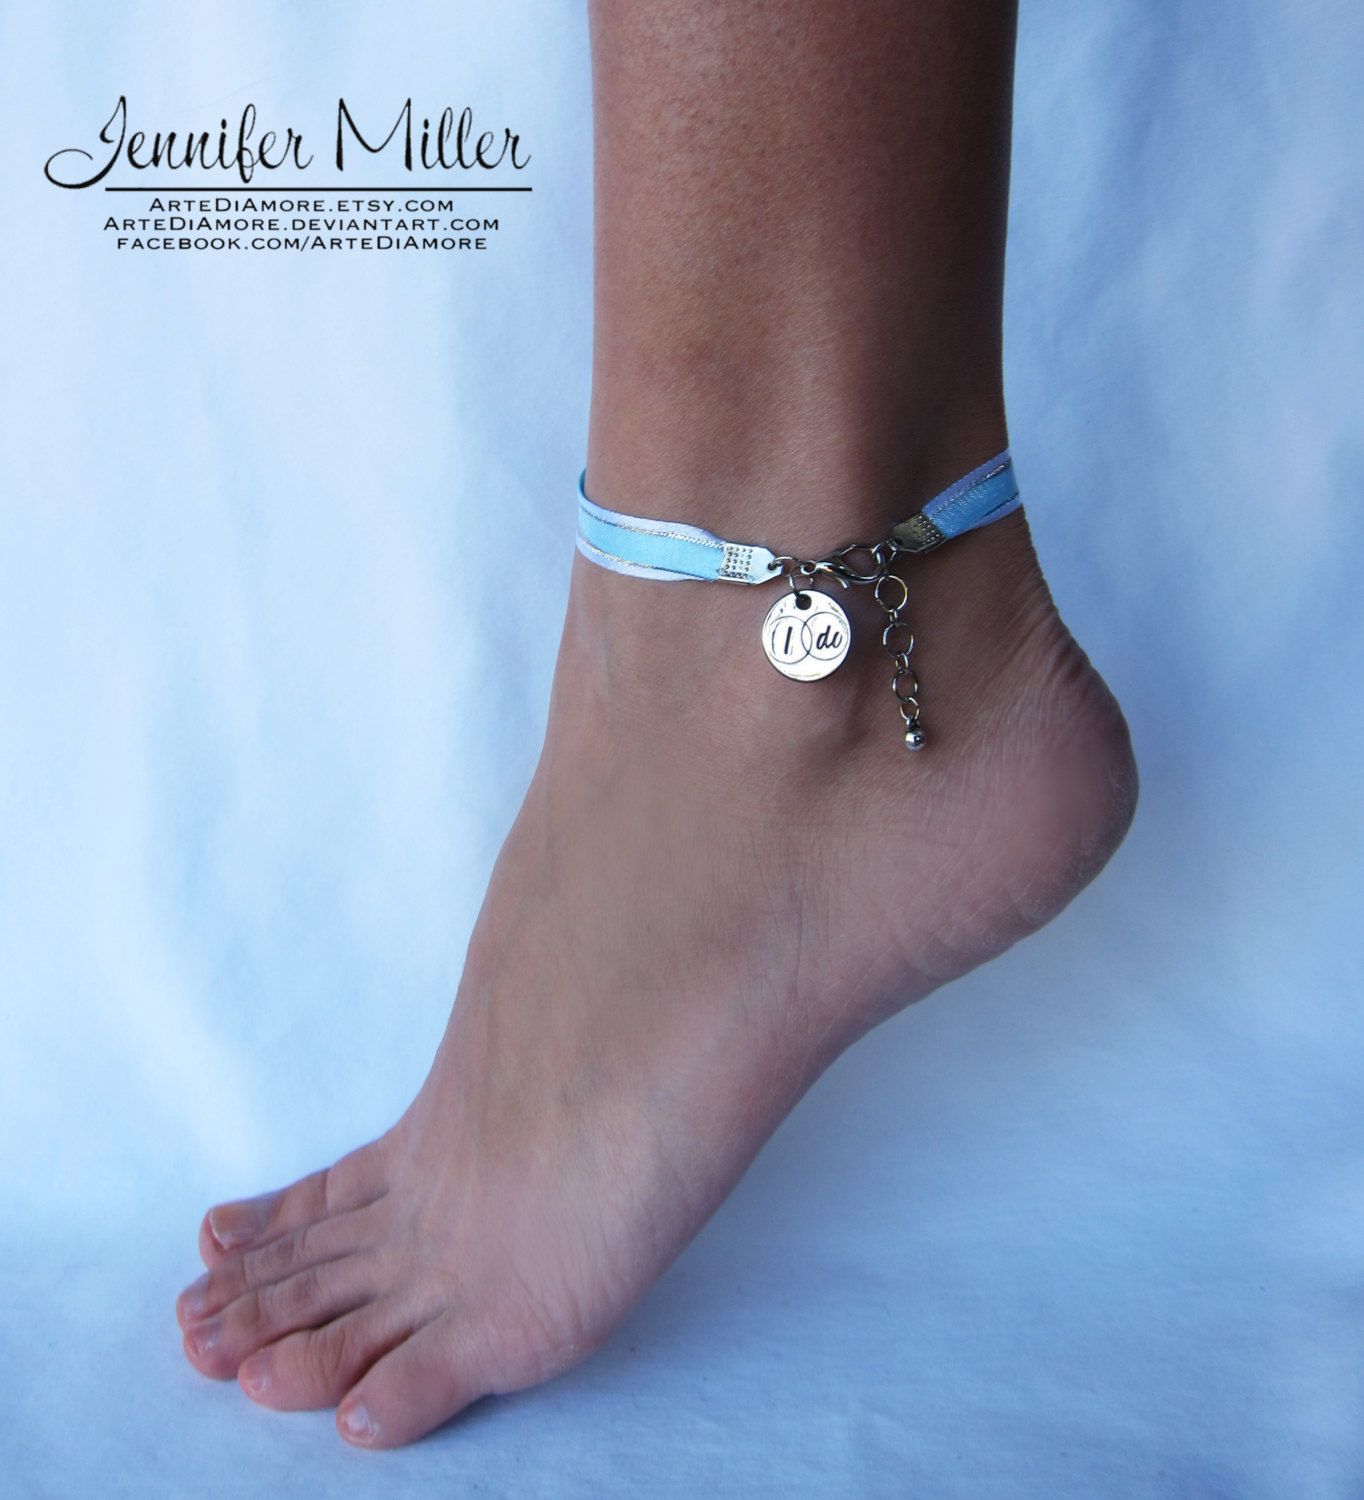 beach silver anklets anklet teen wedding jewelry gift jerezwine